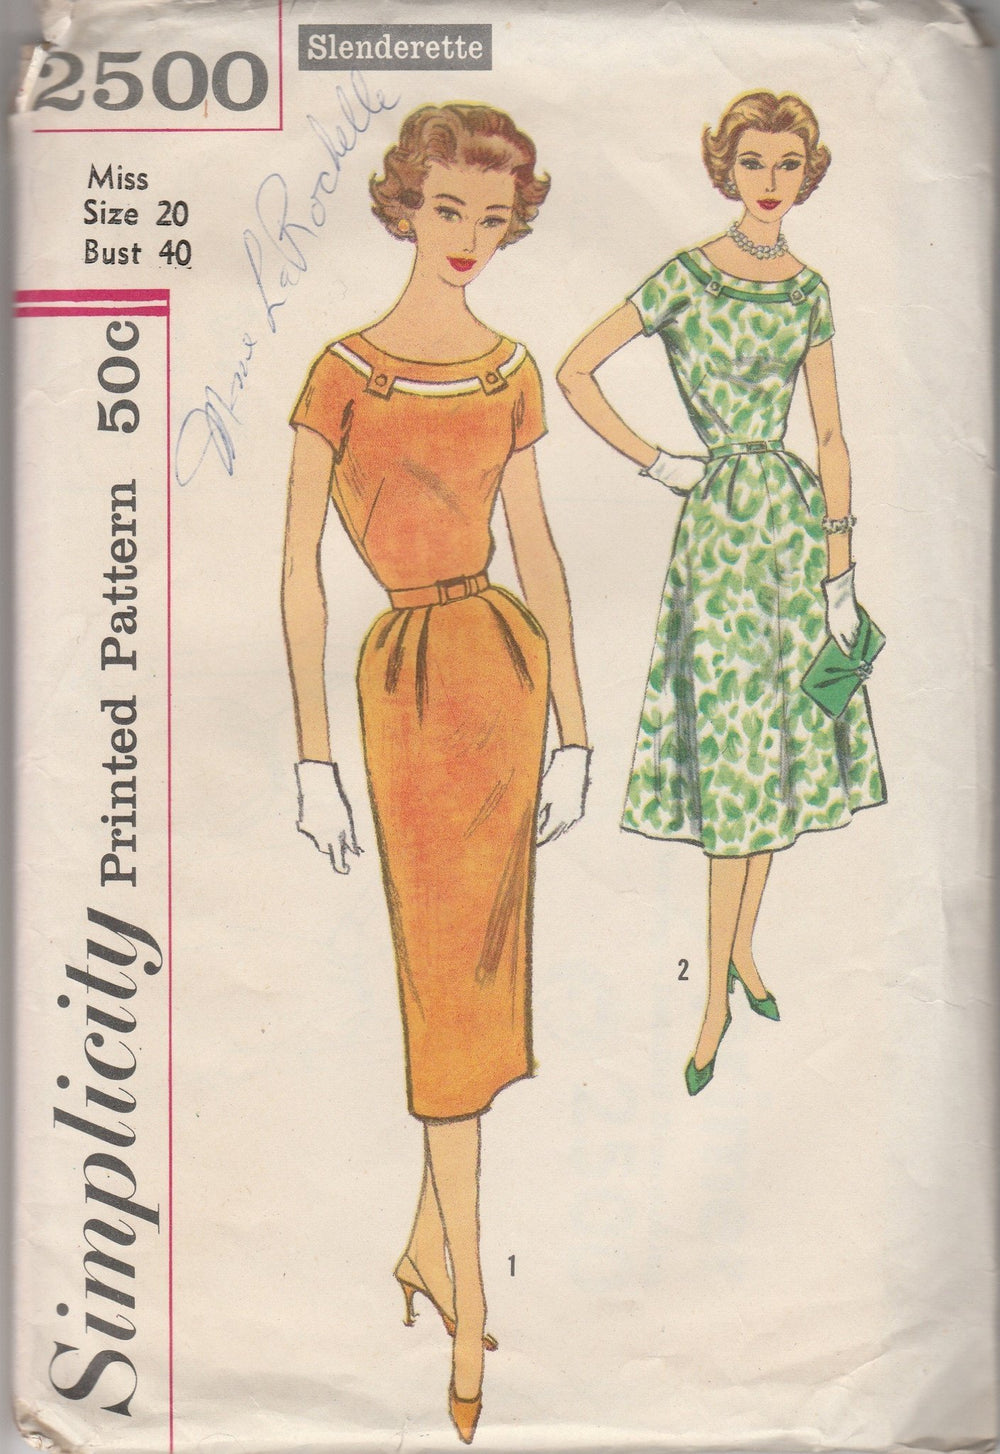 Simplicity 2500 Ladies Sheath Dress Vintage 1950's Sewing Pattern Slenderette - VintageStitching - Vintage Sewing Patterns